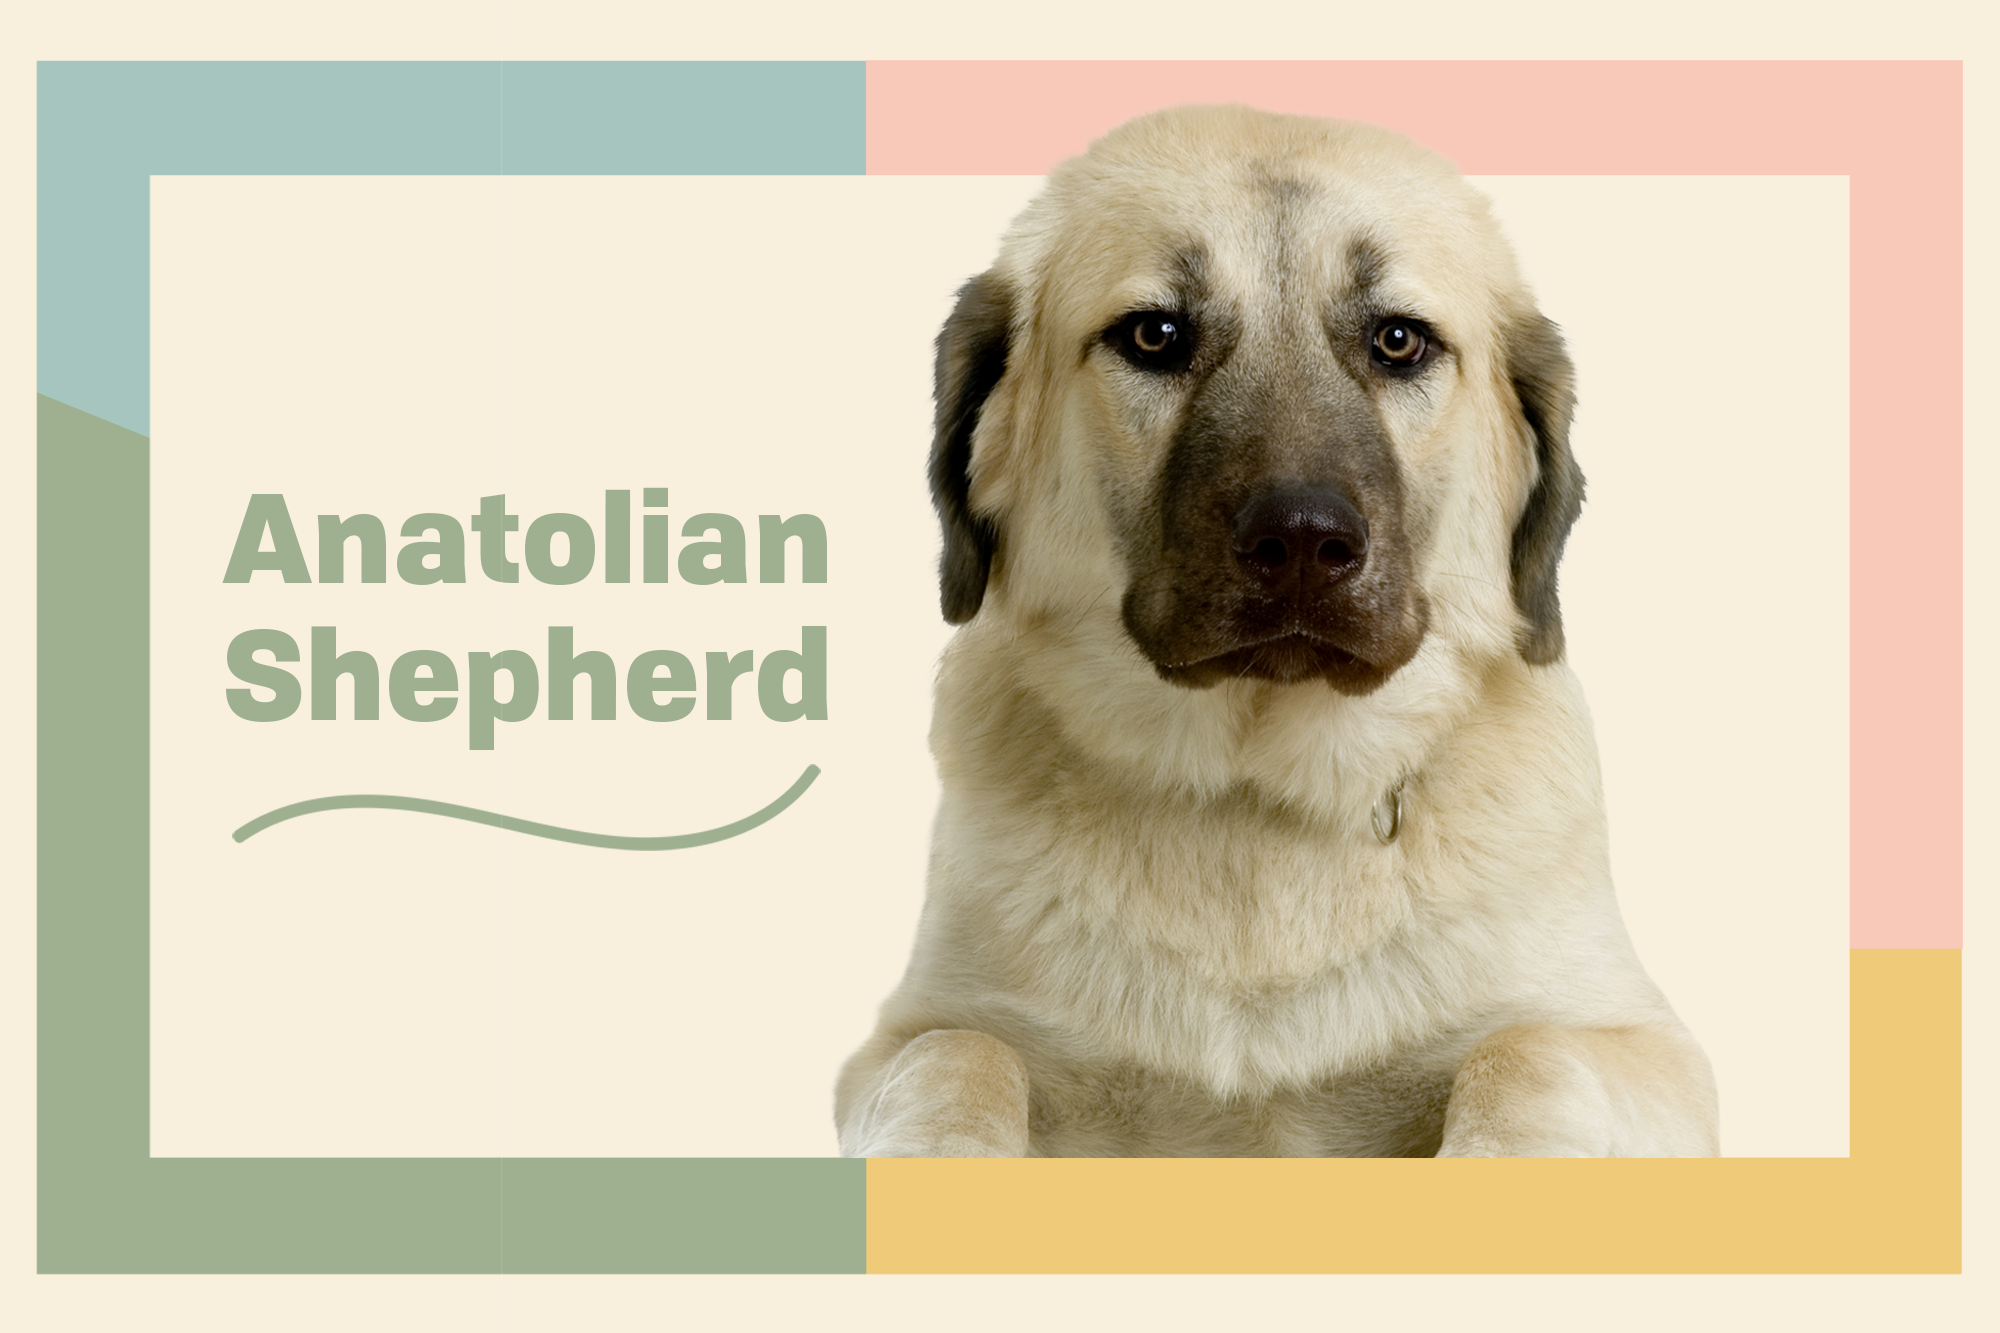 Anatolian Shepherd Breed Photo